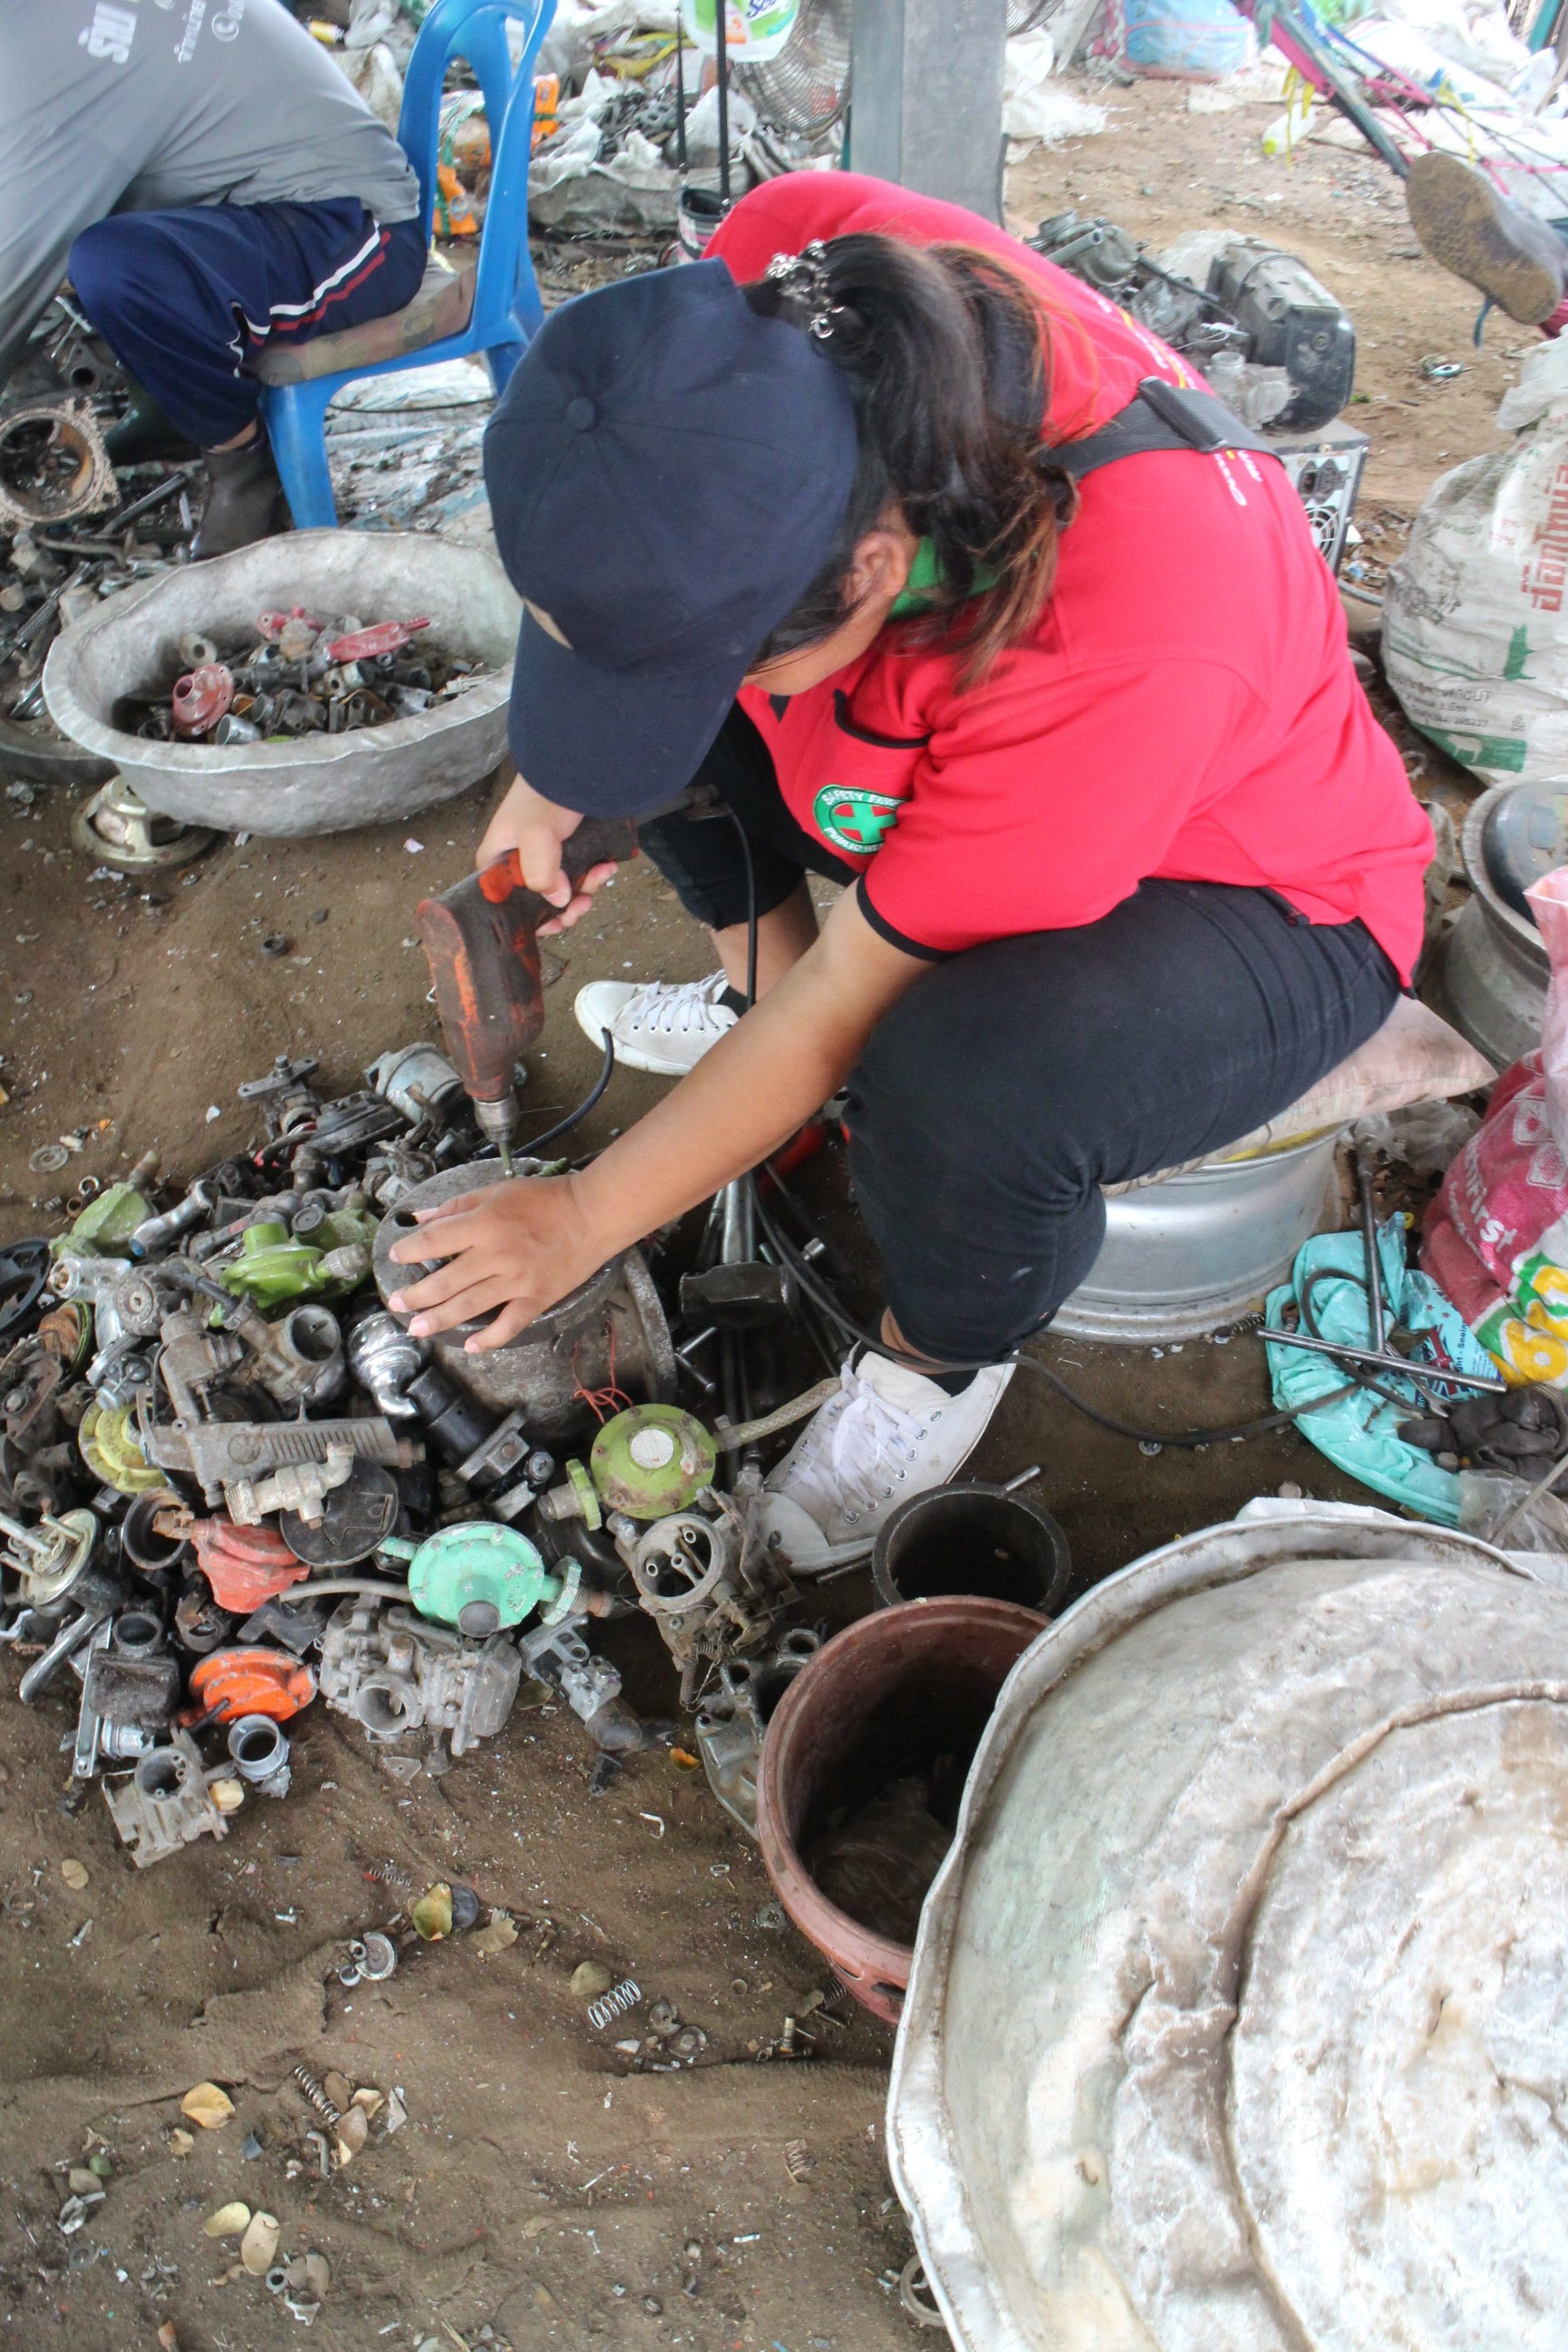 An e-waste recycler works to take a motor apart in Thailand. Image credit: University of Michigan